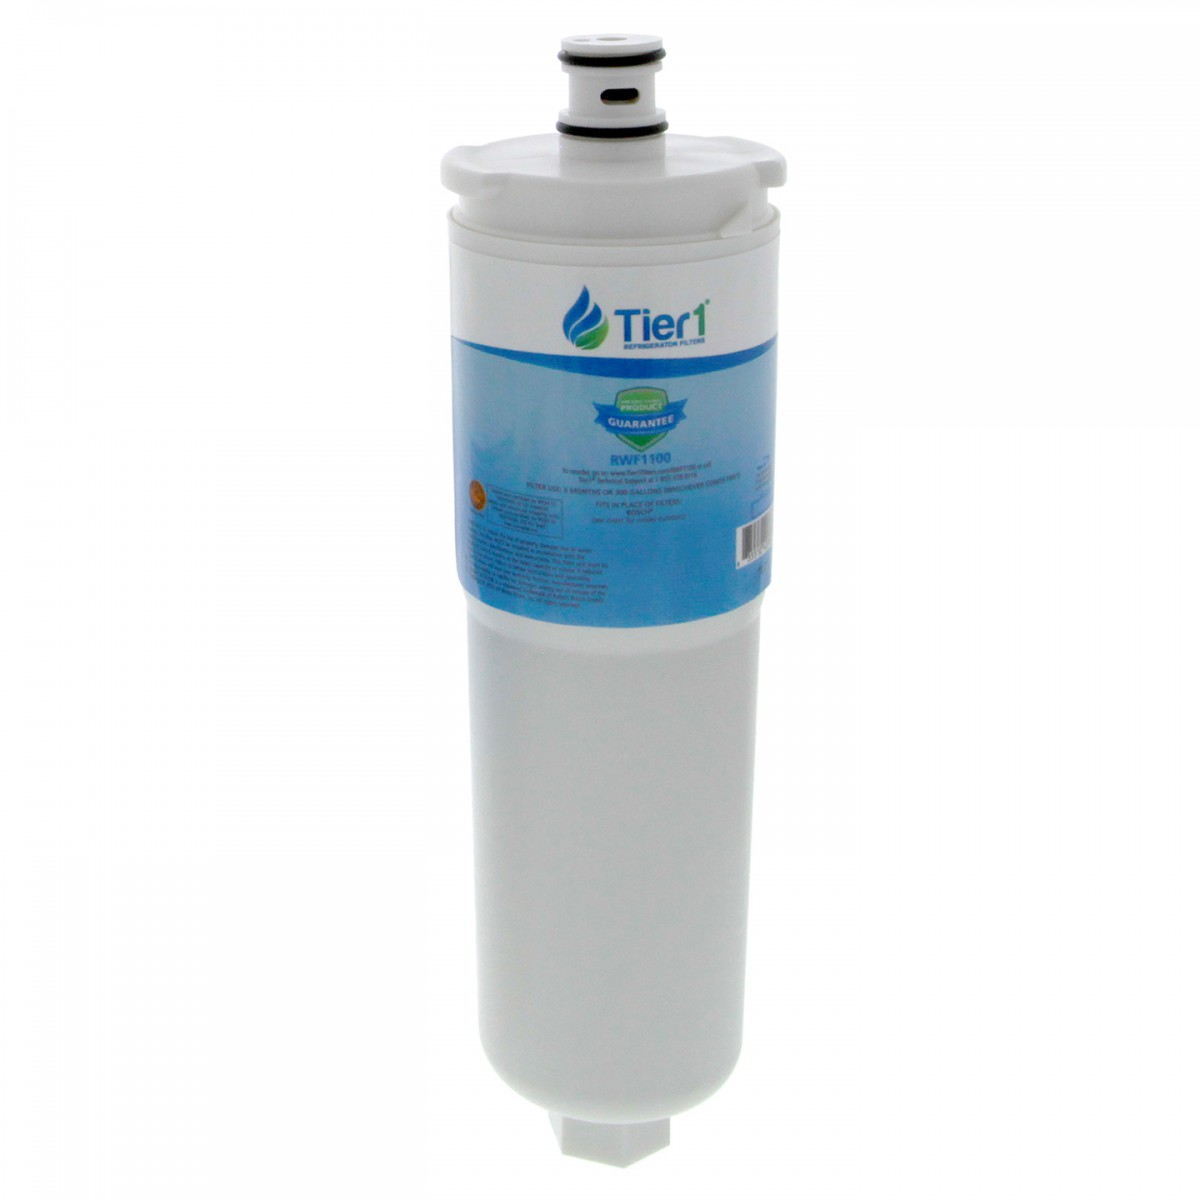 Bosch 640565 Cs 52 Comparable Refrigerator Water Filter Replacement By Tier1